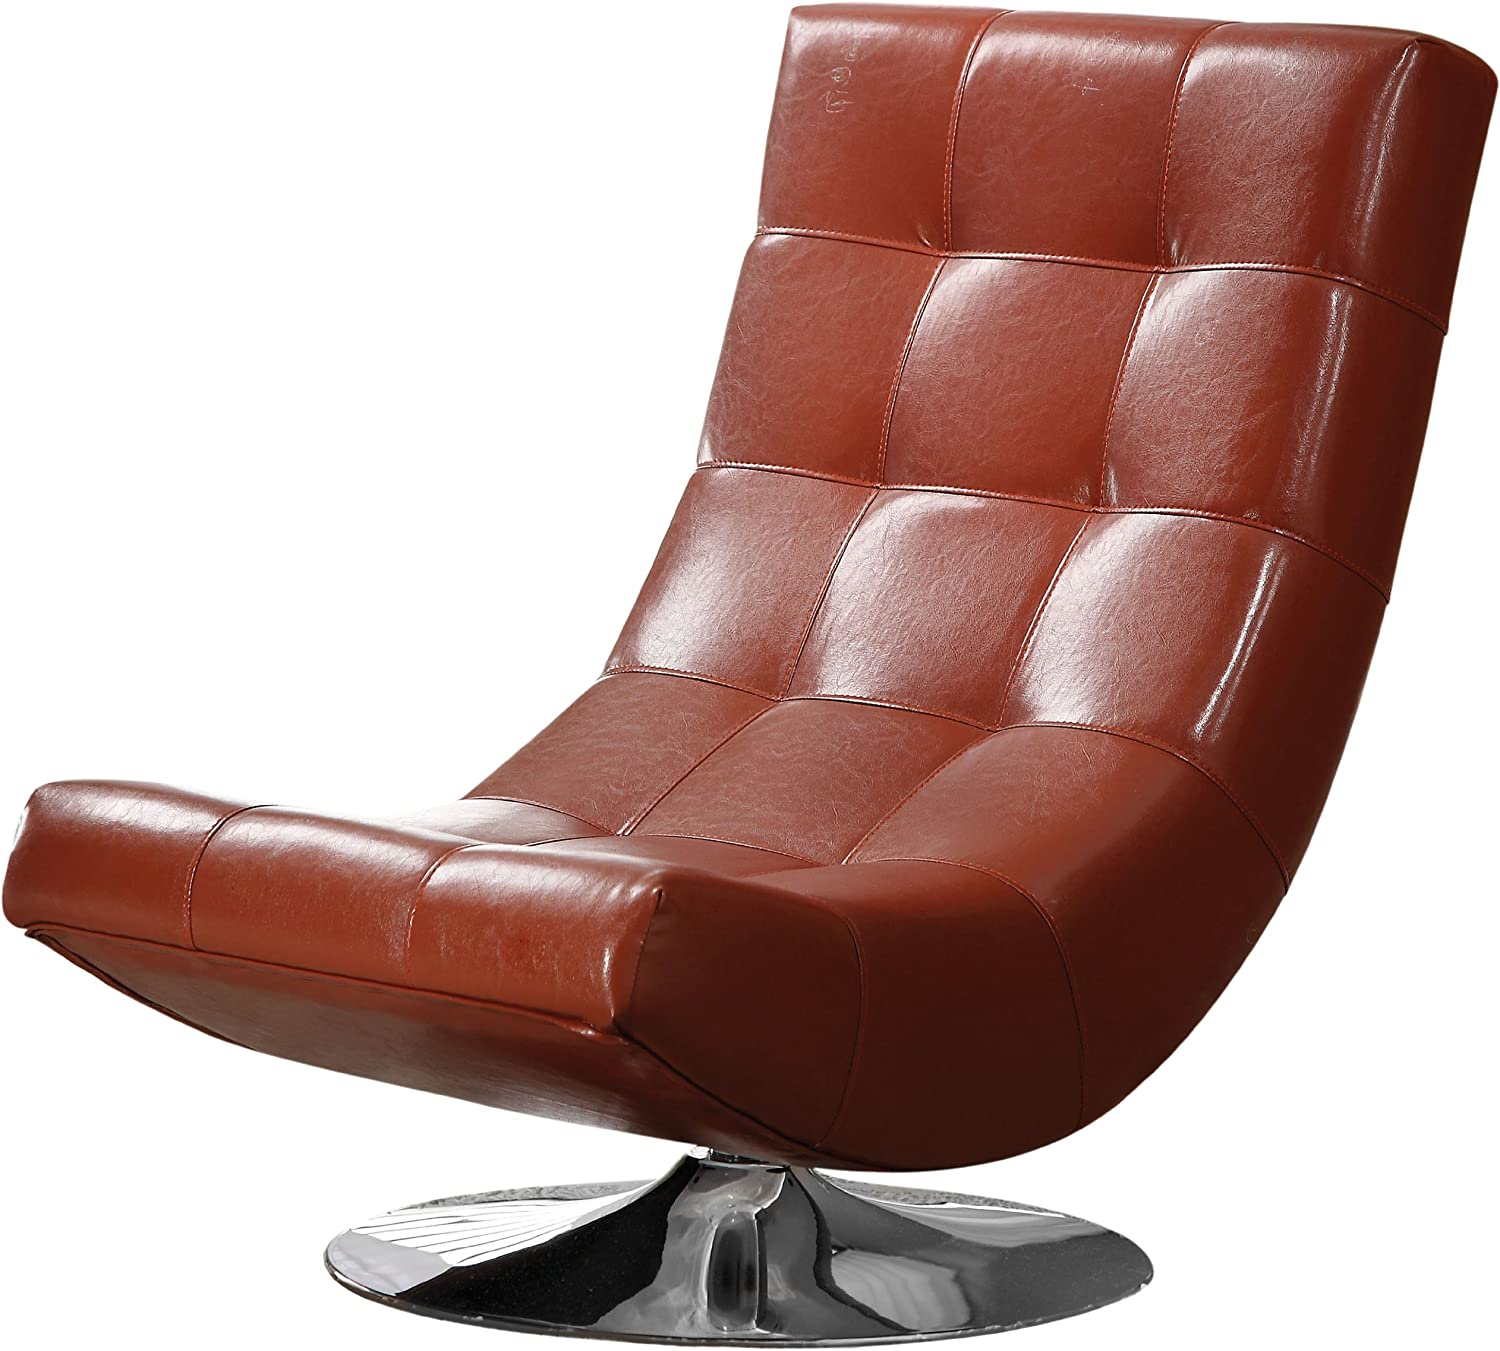 Furniture of America Trinidad Arm Chair, Mahogany Red